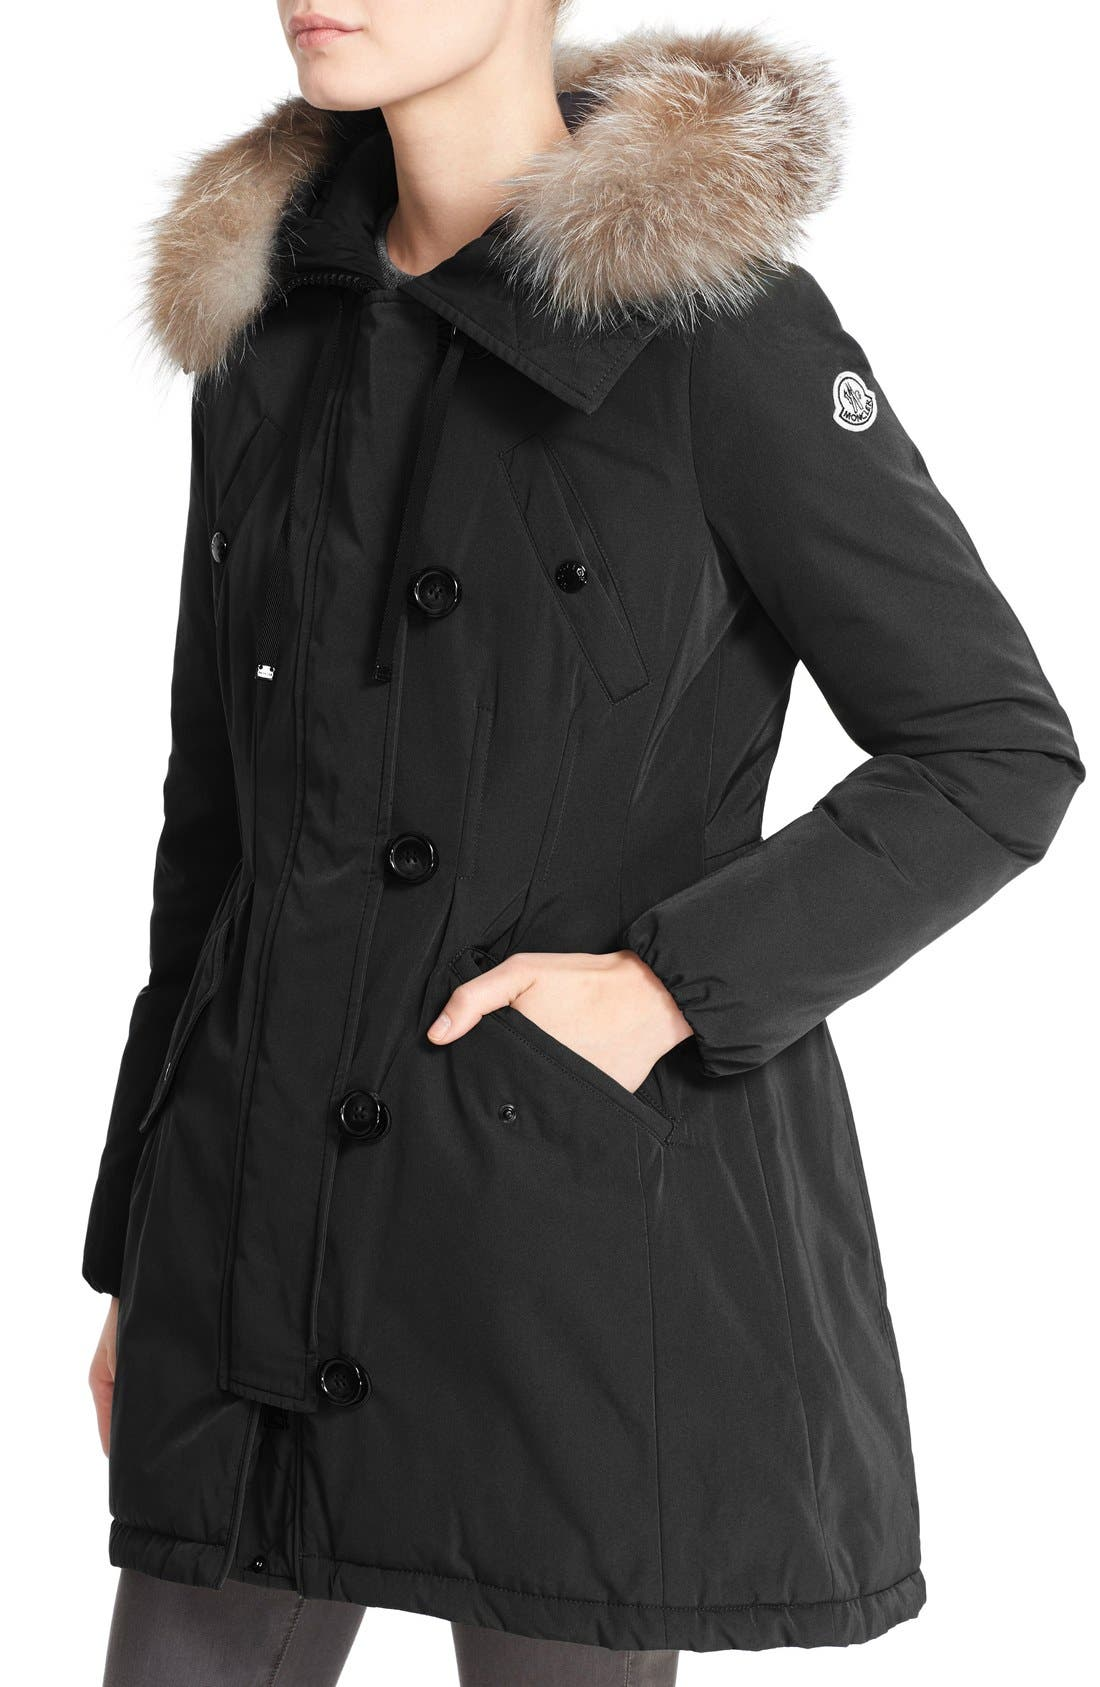 Aredhel Hooded Down Parka with Removable Genuine Fox Fur Trim,                             Alternate thumbnail 9, color,                             001